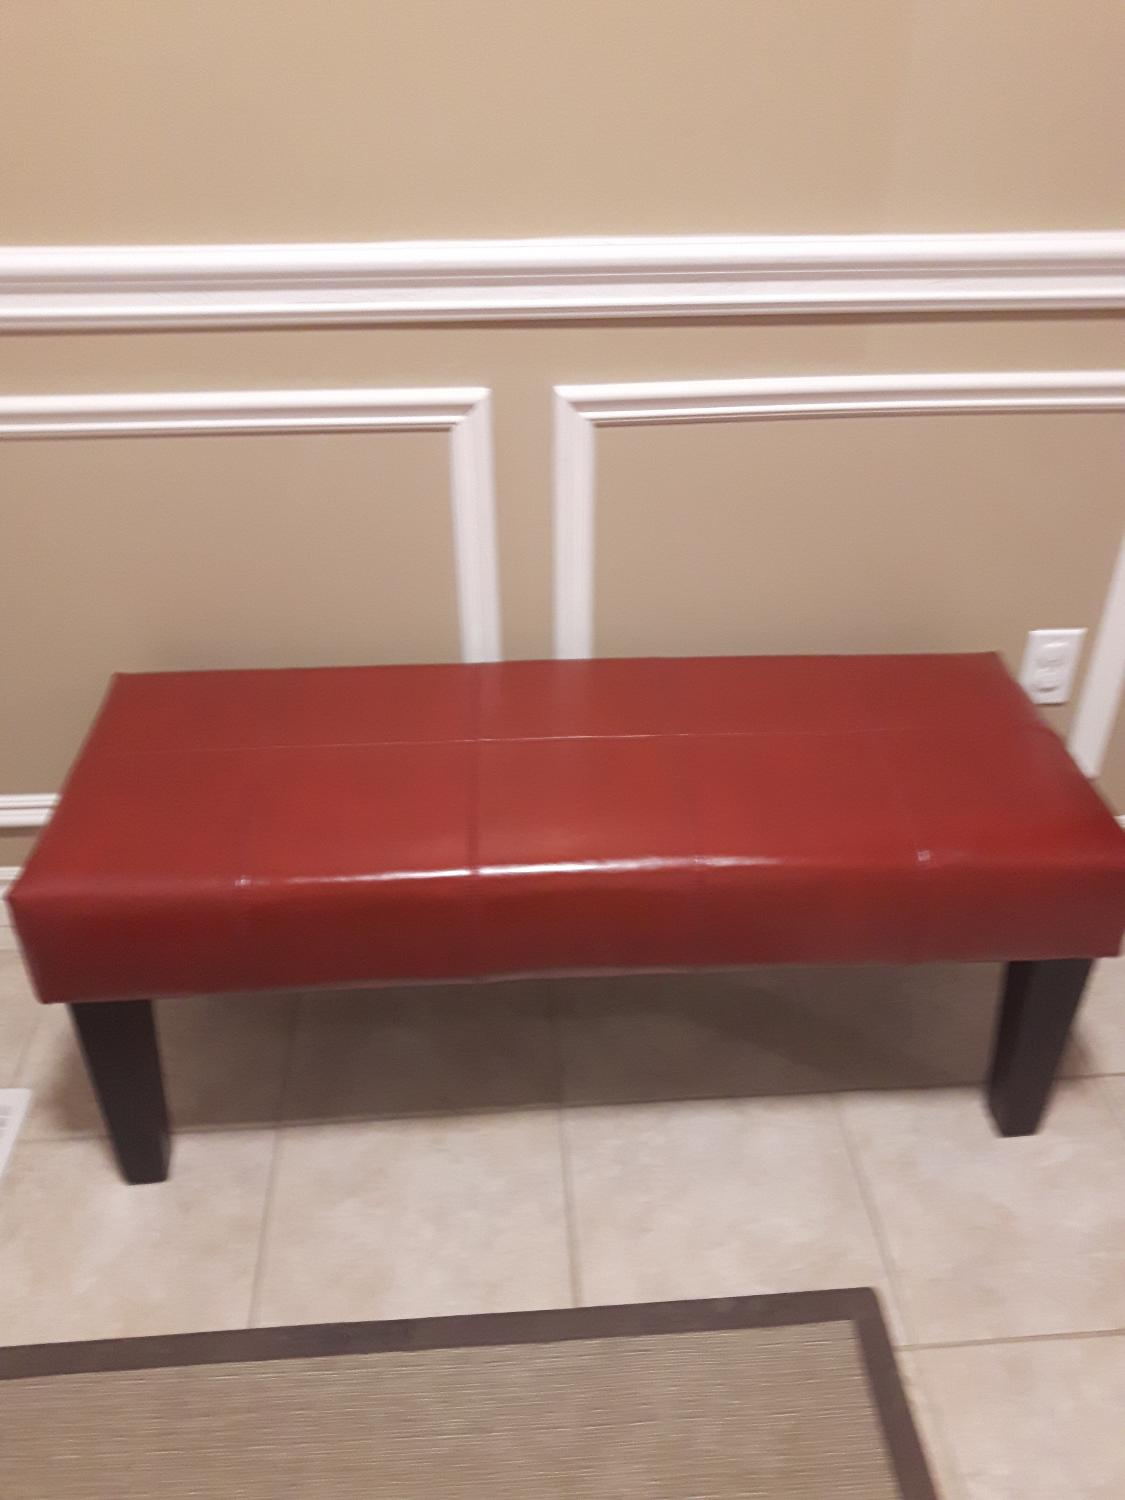 Find More Red Leather Bench For Sale At Up To 90 Off